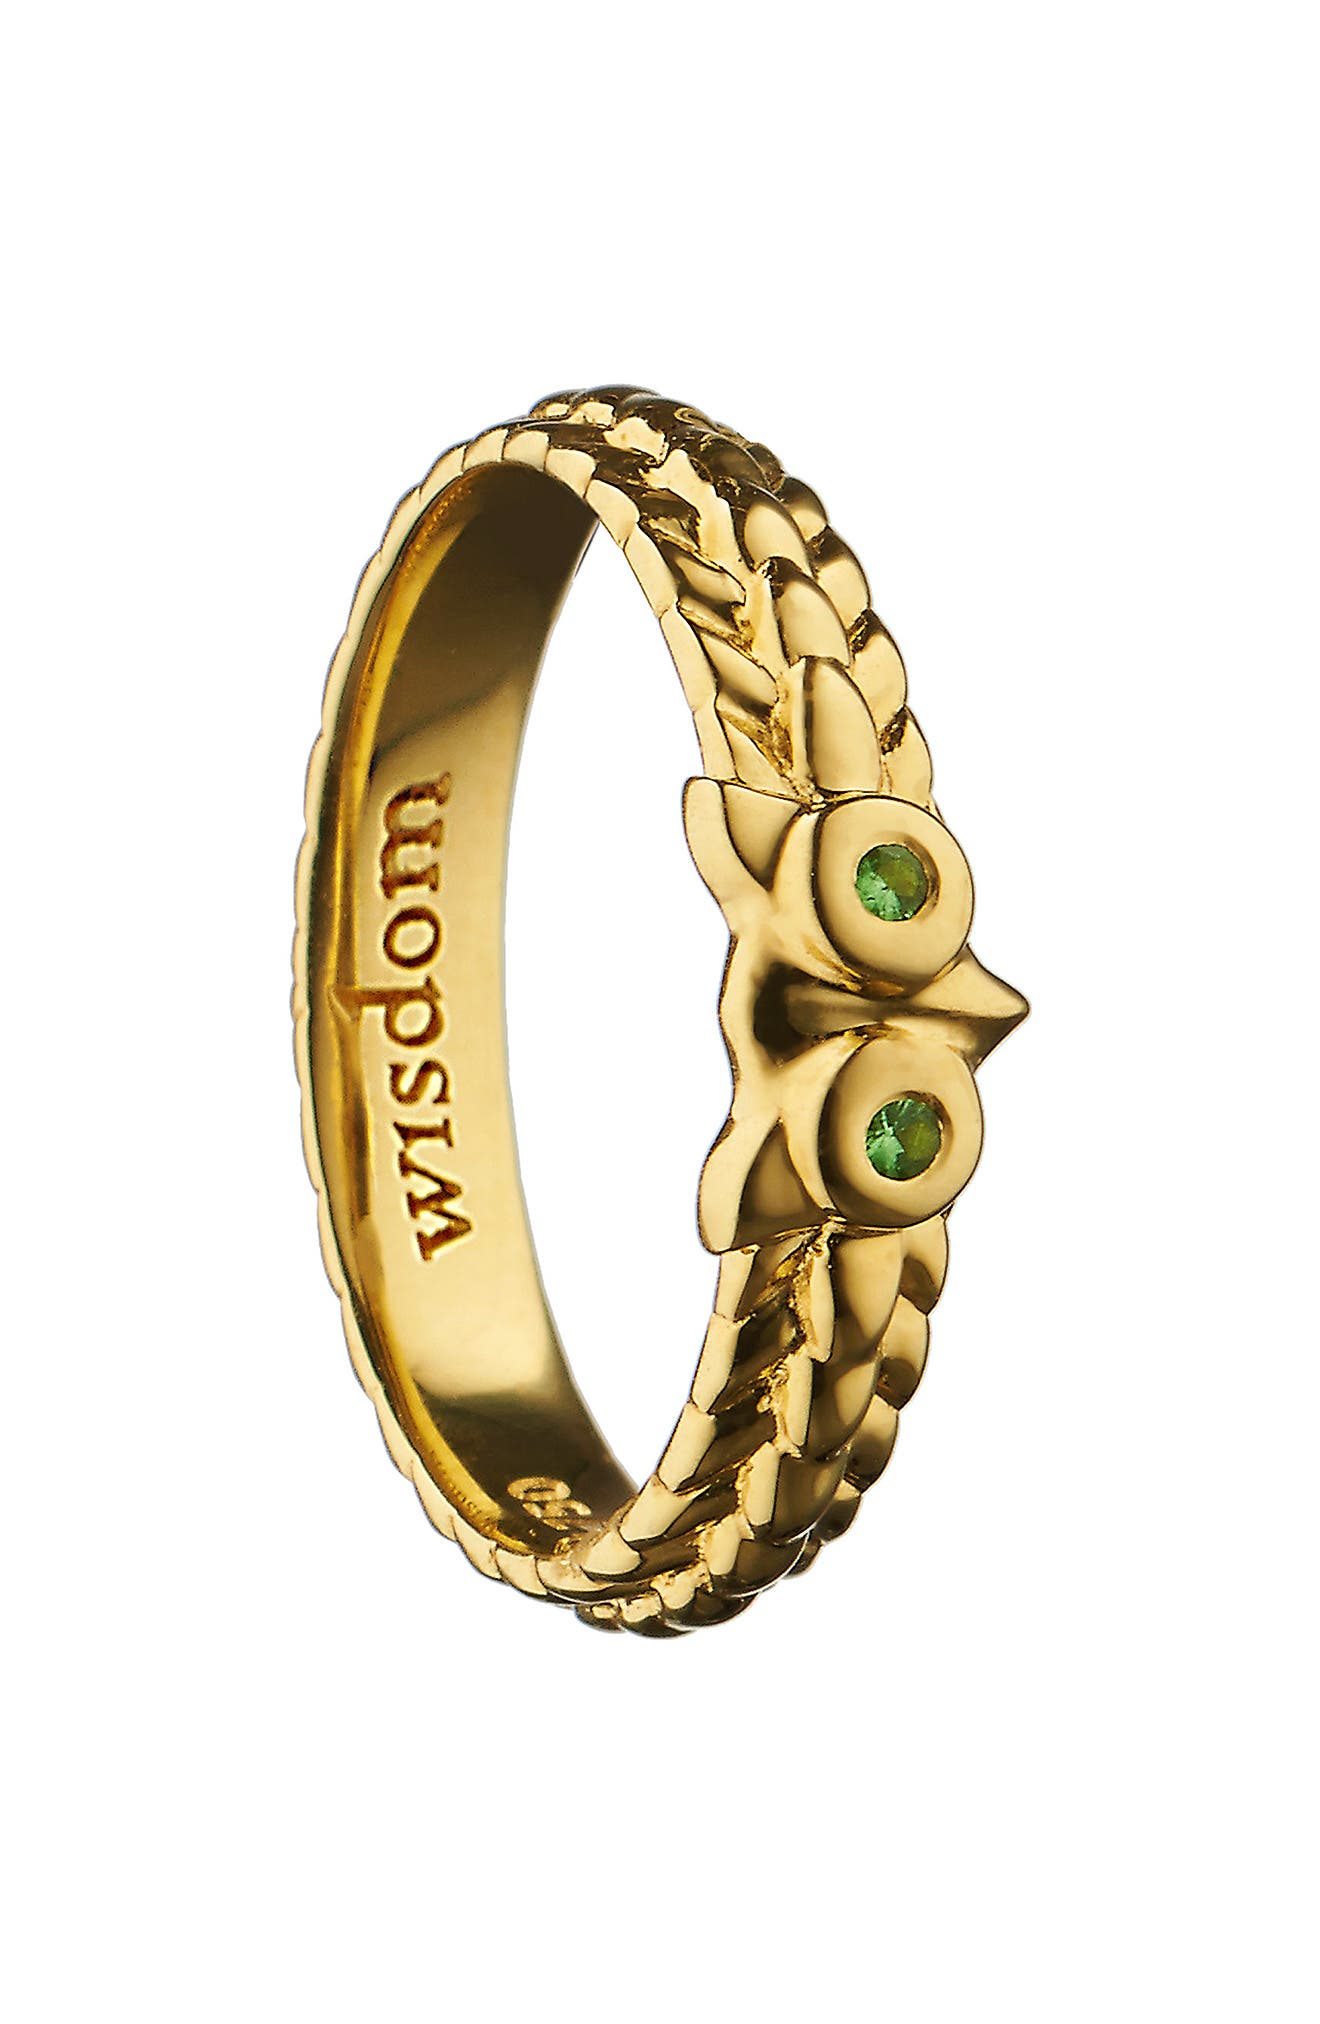 Wisdom Owl Poesy Ring Charm,                         Main,                         color, 18K YELLOW GOLD